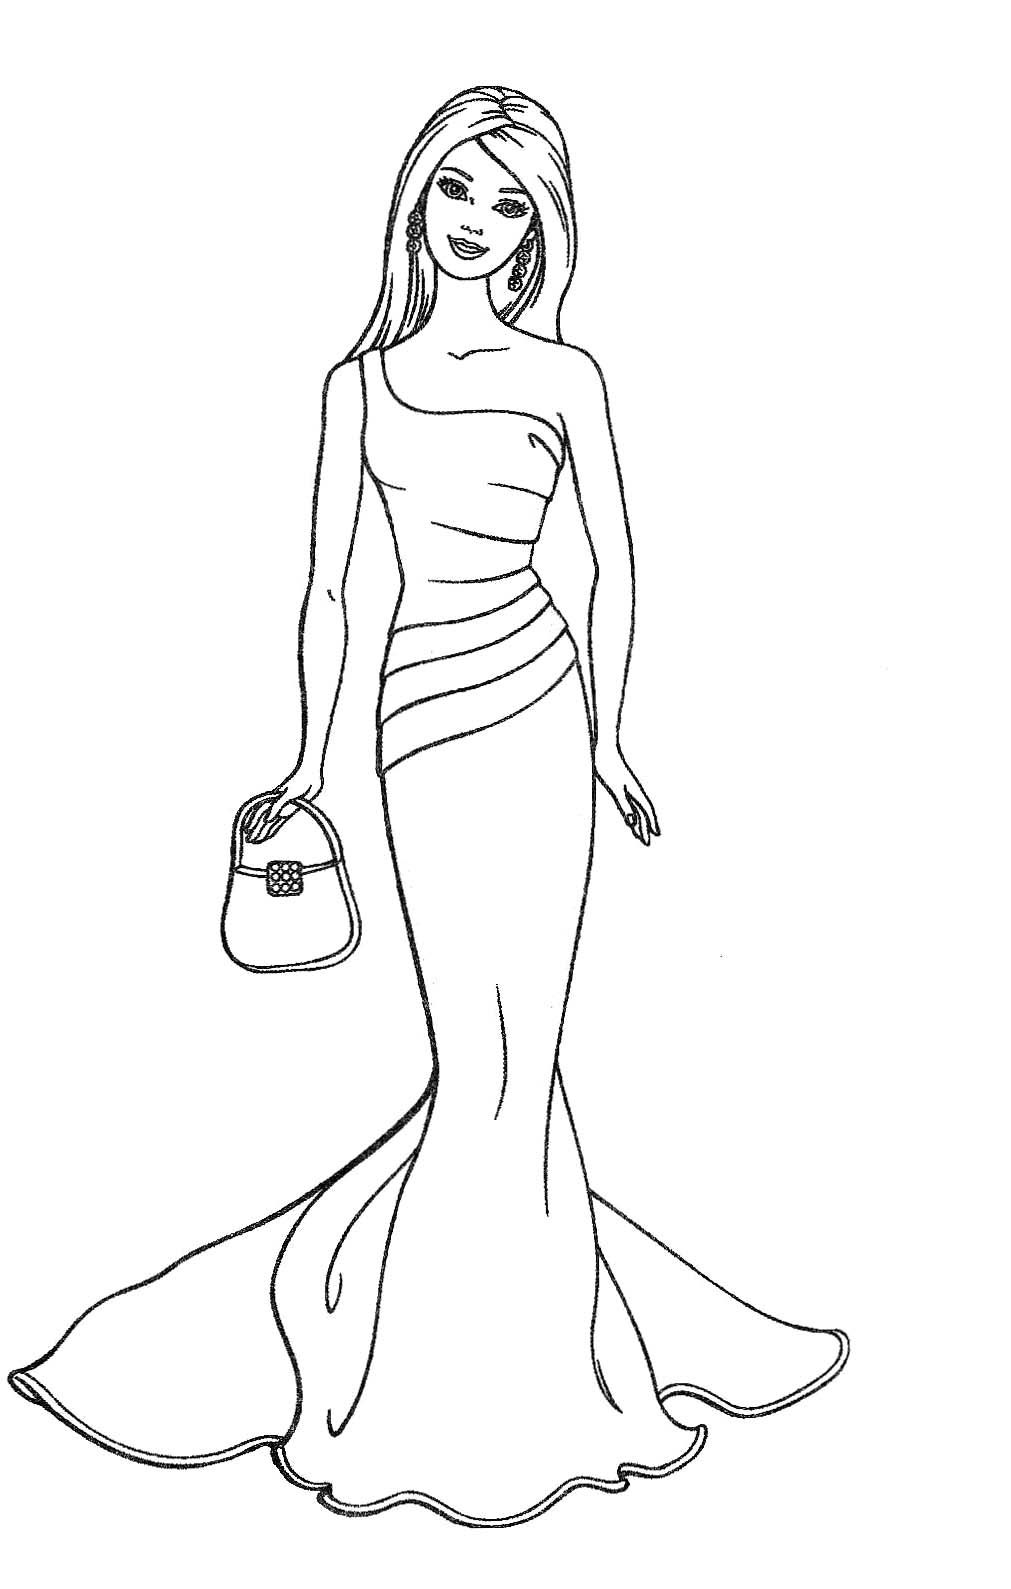 coloring pictures barbie barbie coloring pages at getdrawings free download coloring pictures barbie